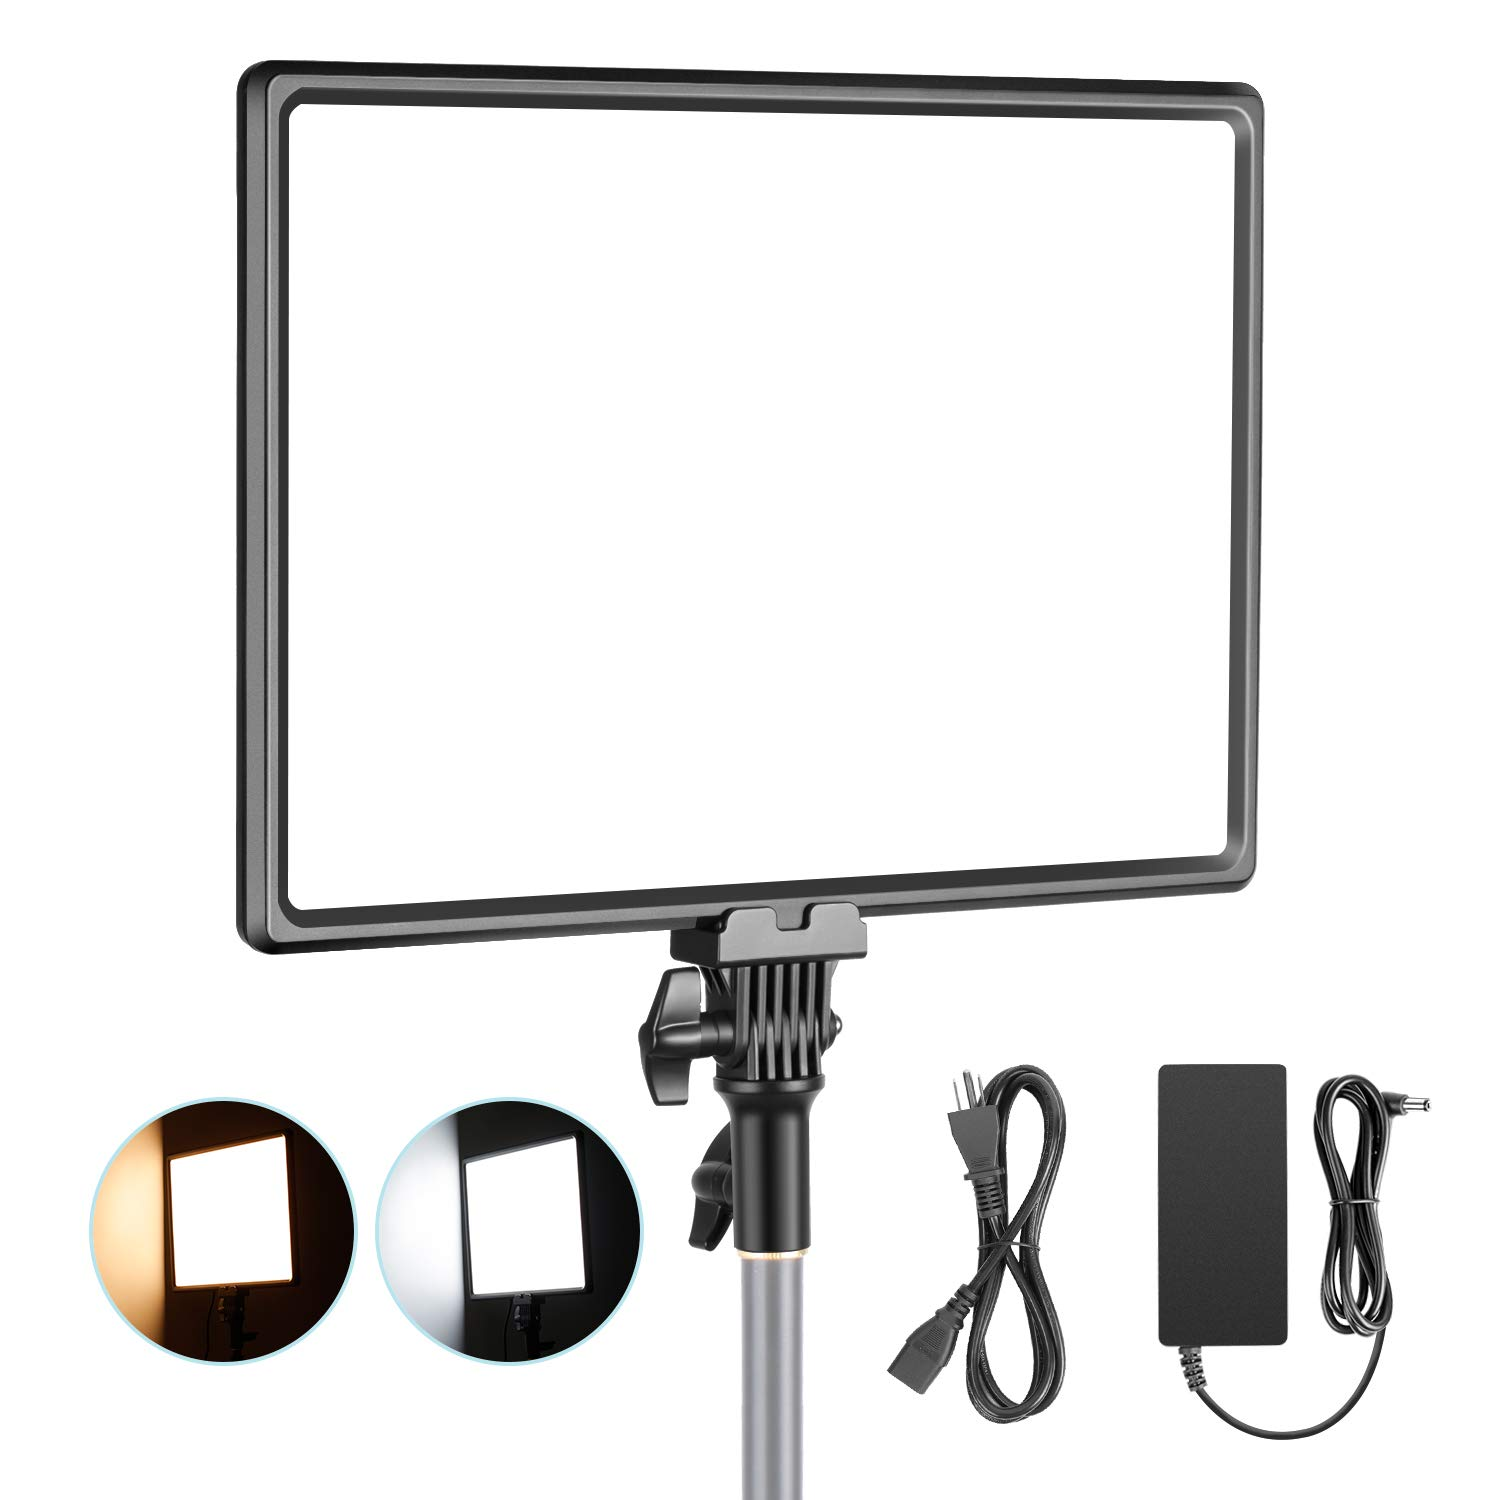 Neewer Super Slim LED Video Light Soft Lighting 40W 3200K-5600K CRI95+ Dimmable LED Panel with LCD Display, Camera Camcorder Photo Light Compatible with Sony NP-F Series Battery (Battery Not Included) by Neewer